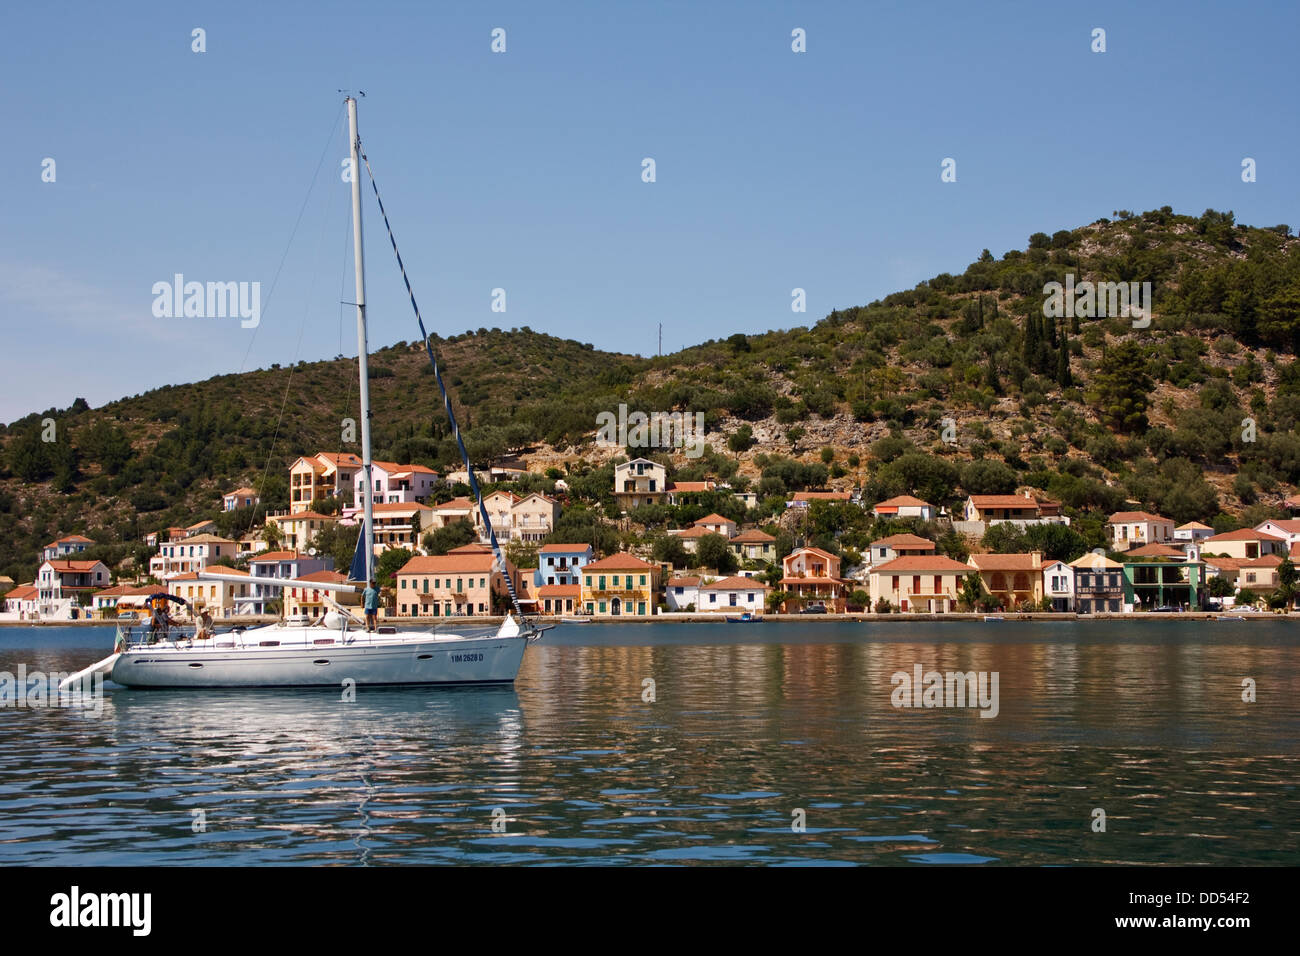 A sailing yacht in the bay at Vathy, on the Greek island of Ithaca. - Stock Image